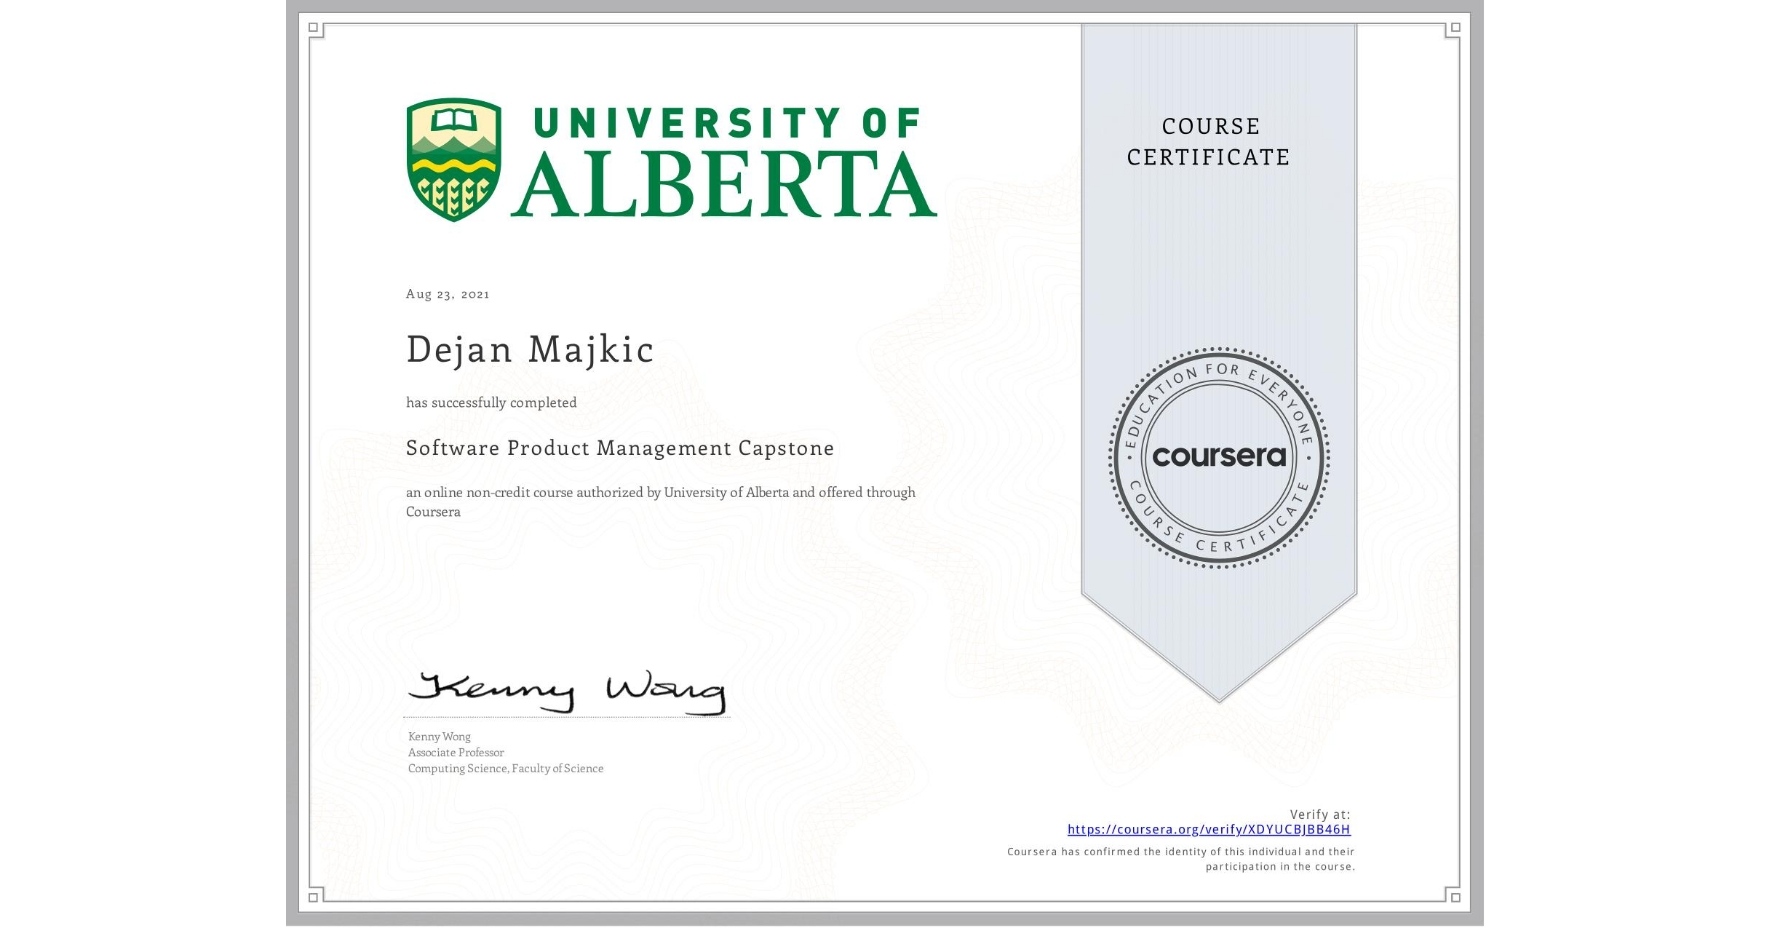 View certificate for Dejan Majkic, Software Product Management Capstone, an online non-credit course authorized by University of Alberta and offered through Coursera